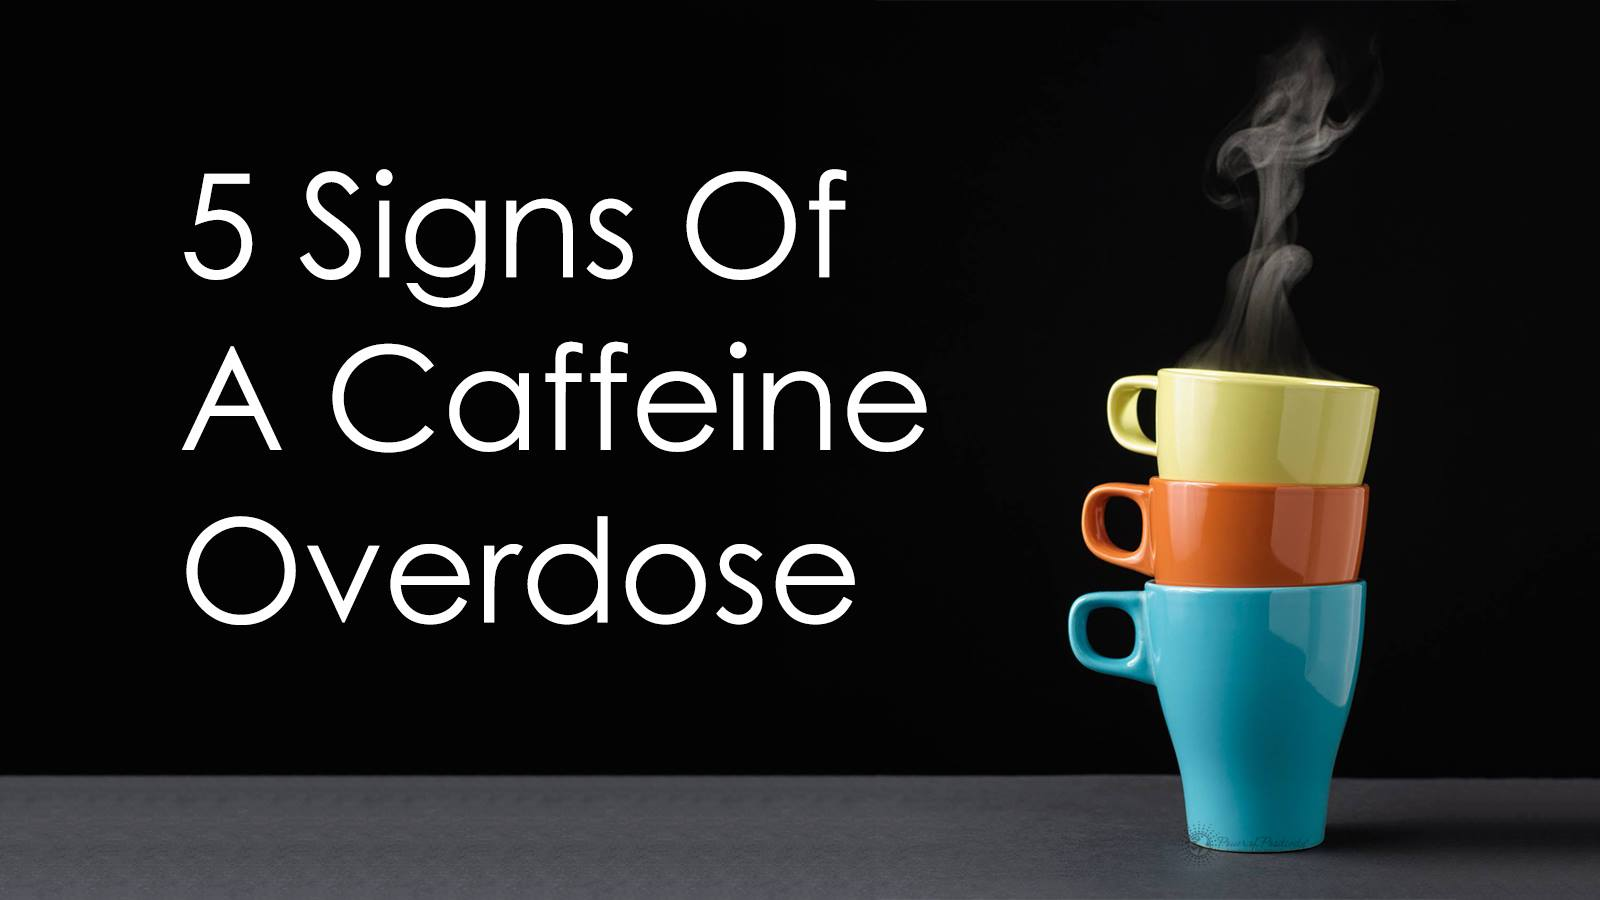 Caffeine Coffee How Much 5 Signs Of A Caffeine Overdose